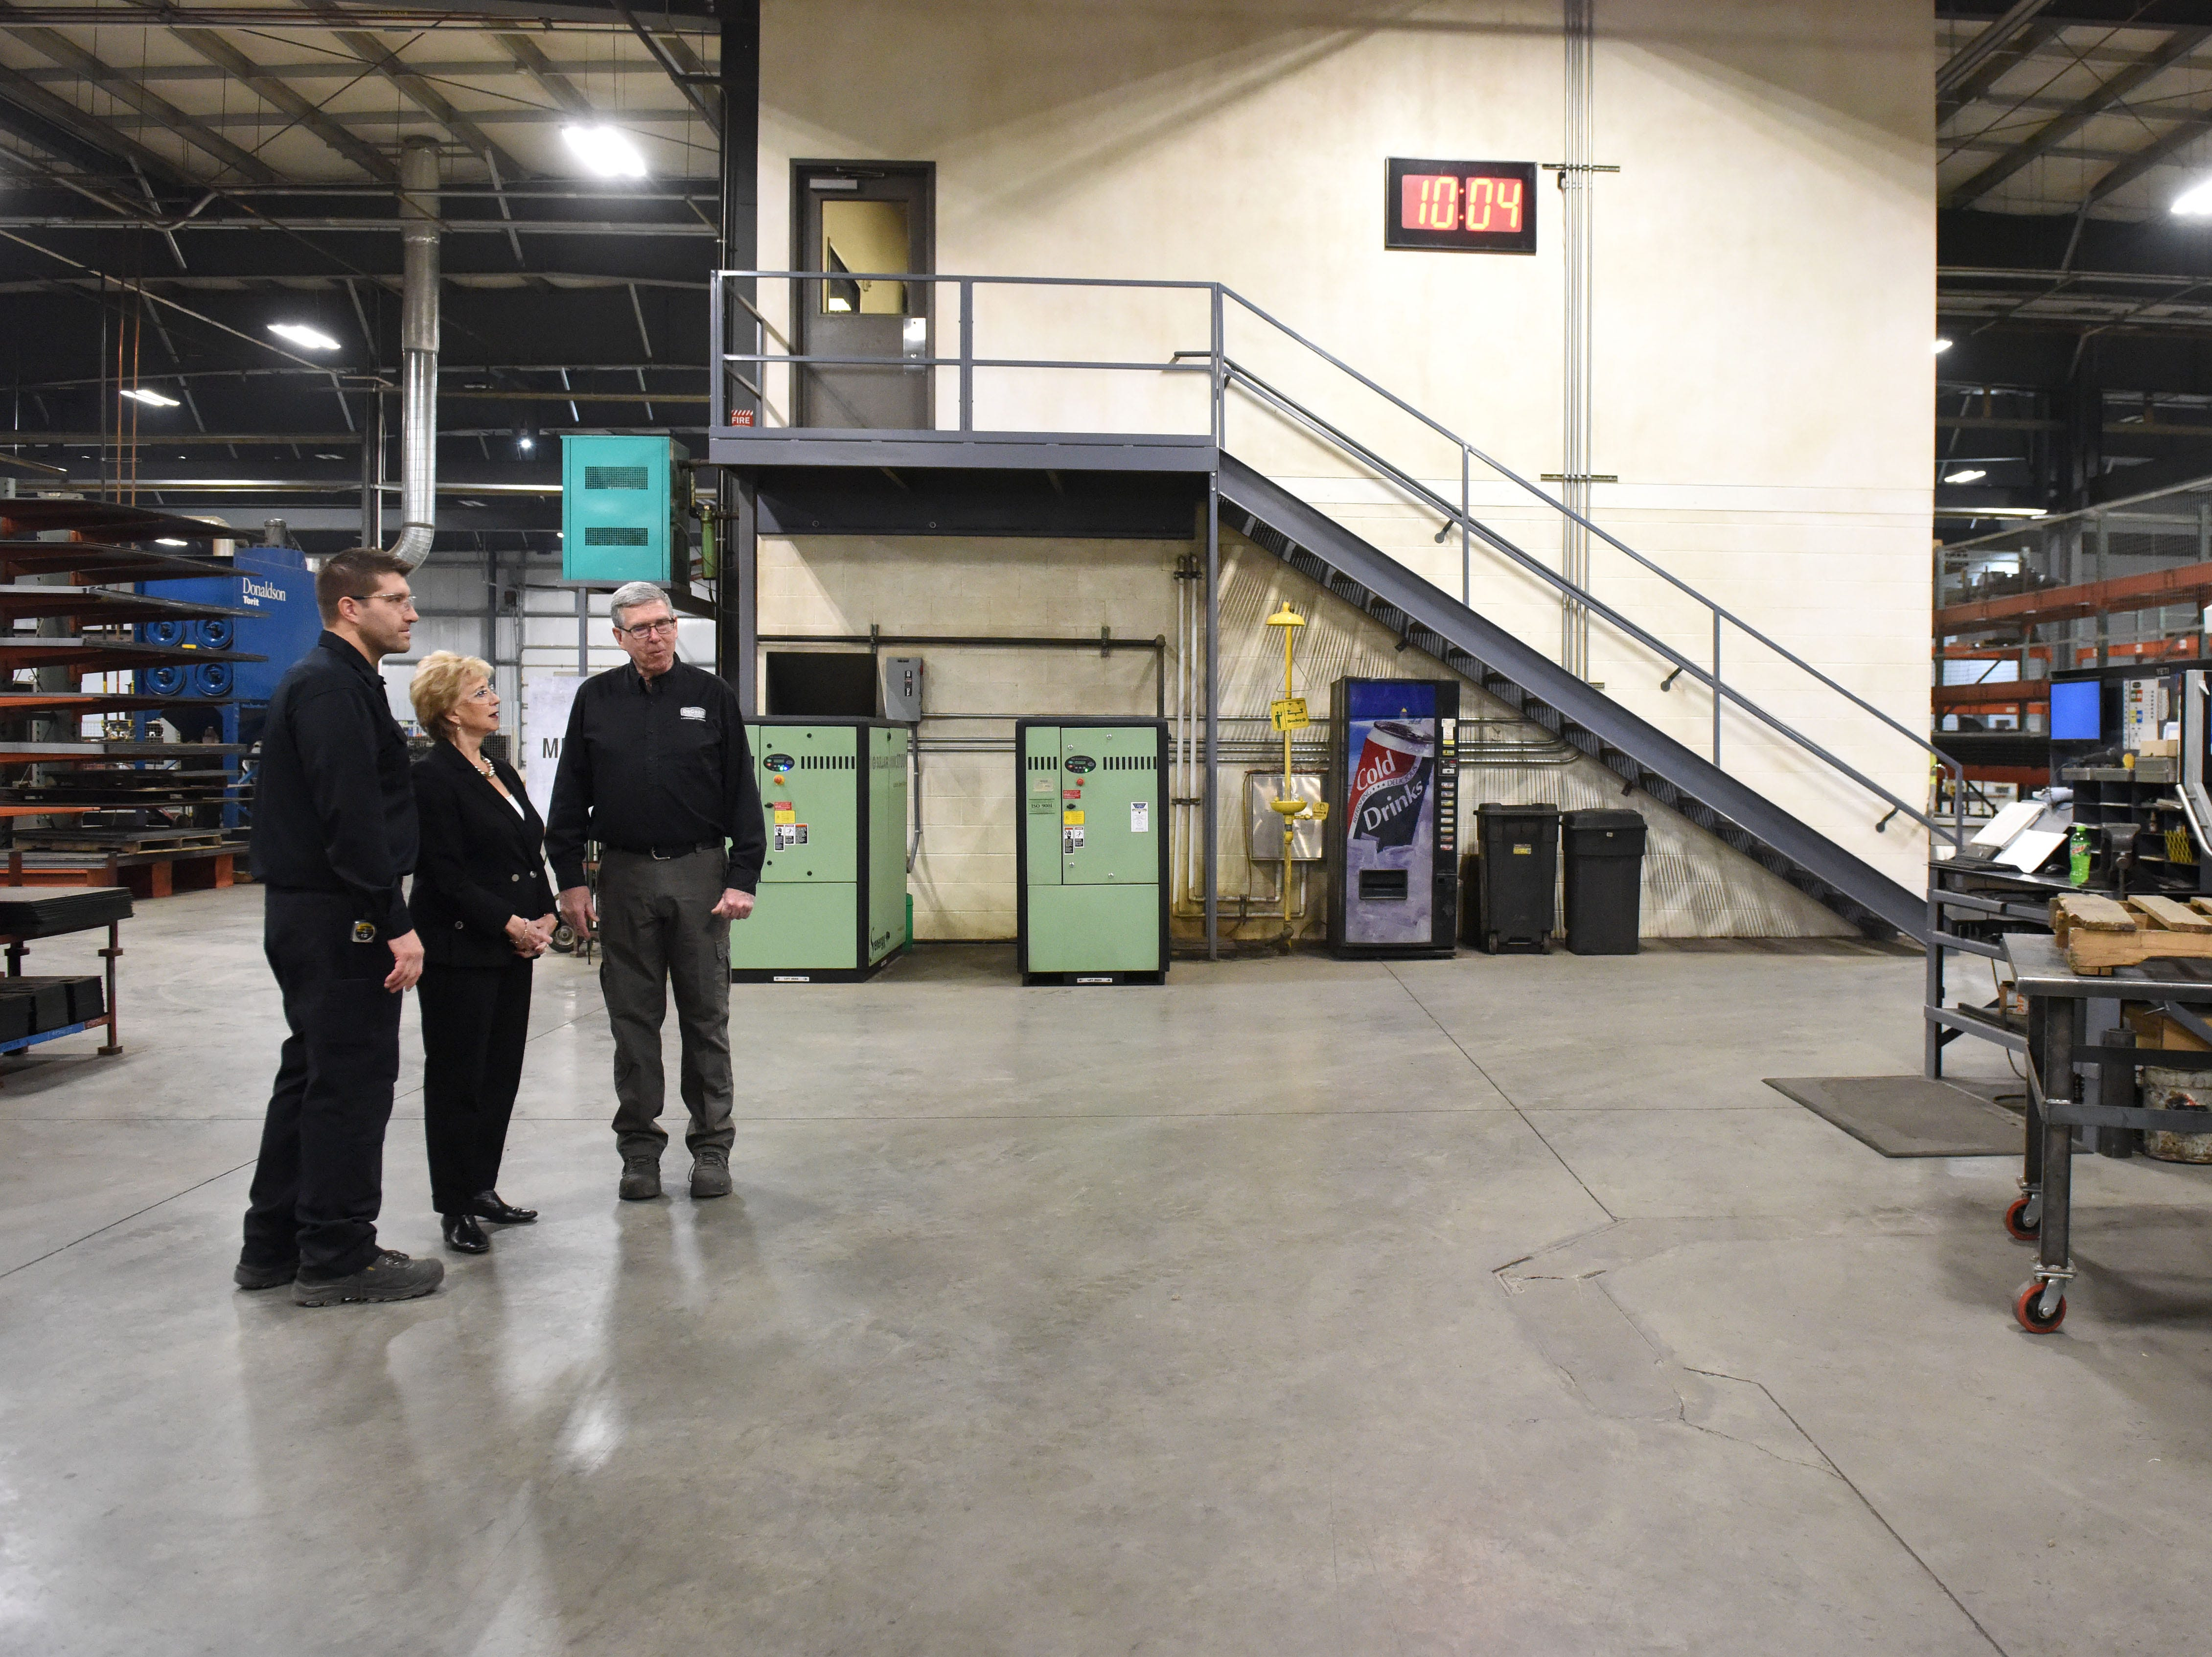 Linda McMahon, head of the U.S. Small Business Administration, gets a tour from Scott and Derek DeGeest at DeGeest Steel Works in Tea, S.D., Thursday, Nov. 29, 2018.